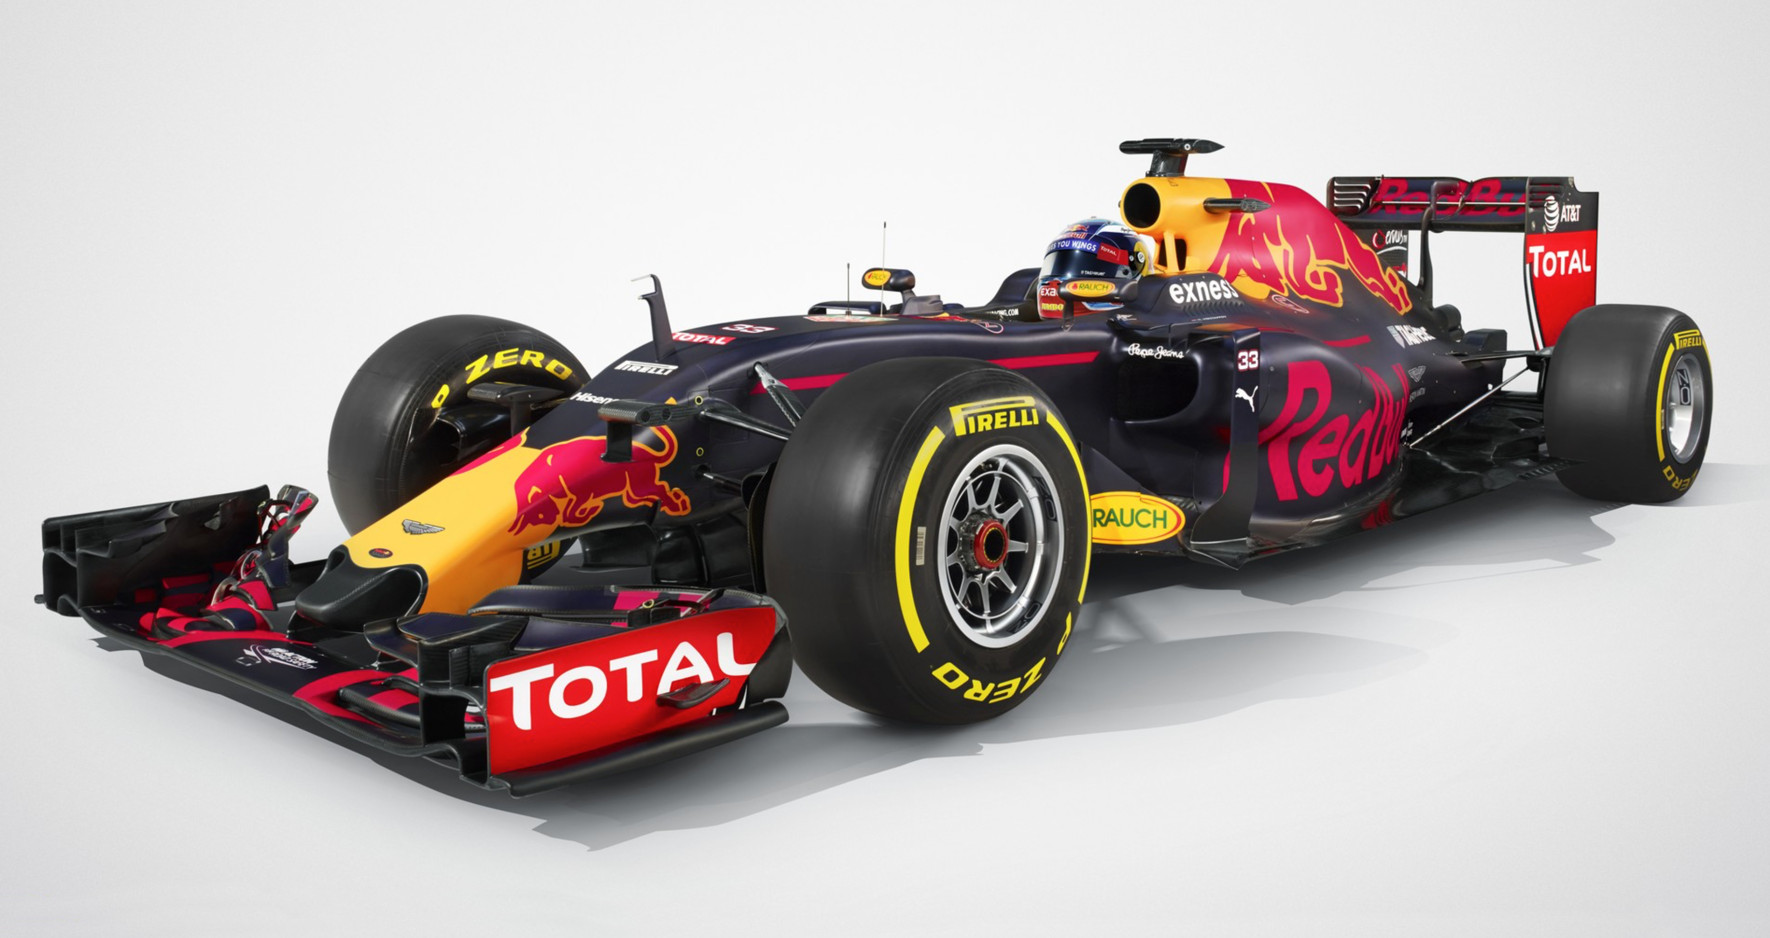 Red Bull Rb13 Tag Heuer: Red Bull Racing TAG Heuer RB13 M.Verstappen Nr.33